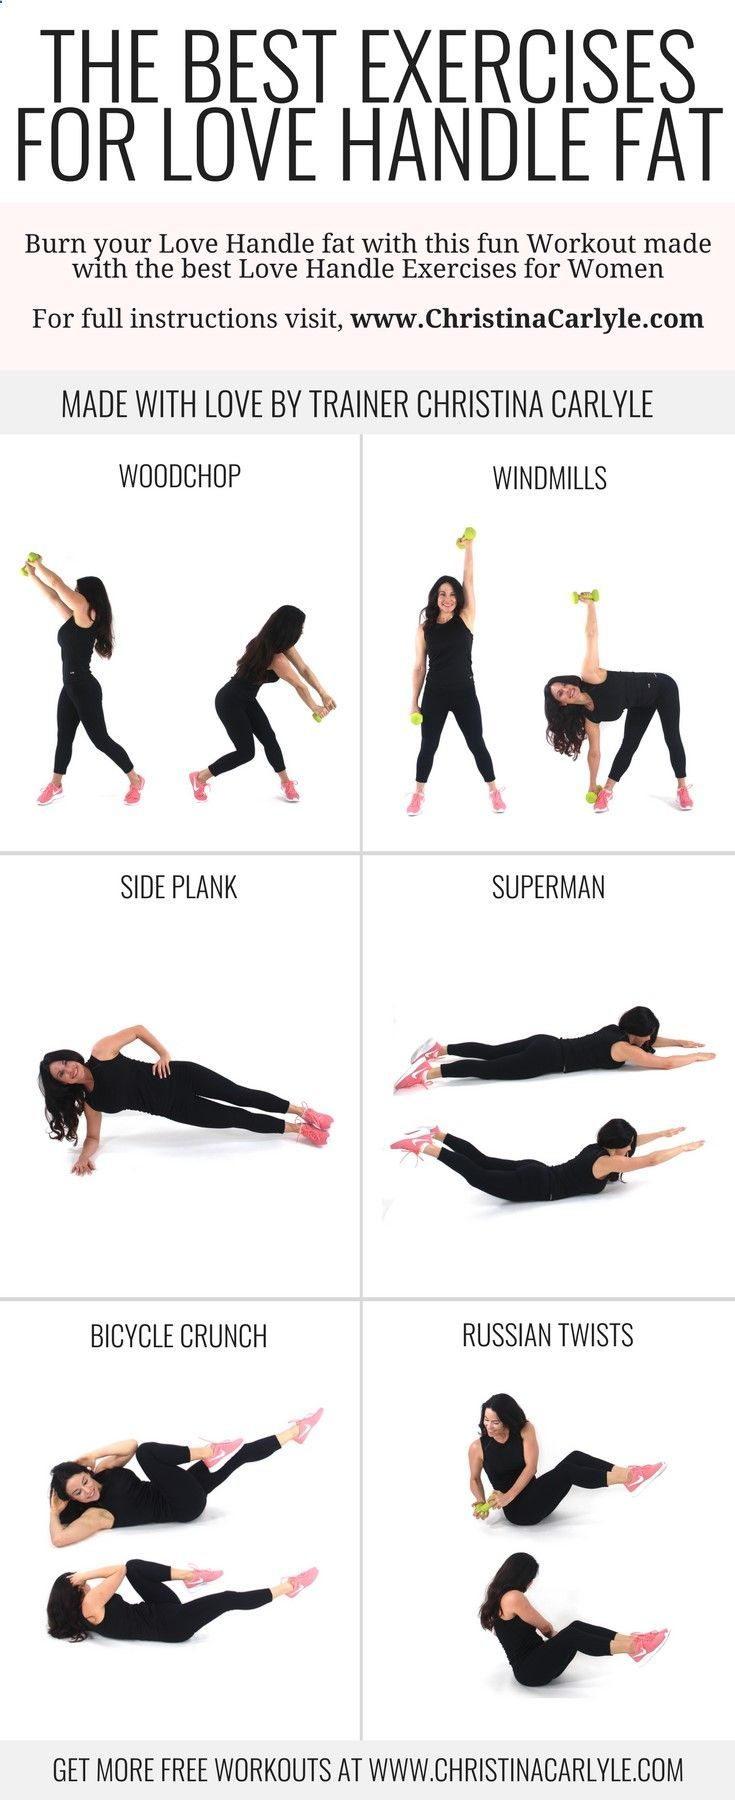 Easy Exercises To Lose Belly Fat And Love Handles - Exercise Poster